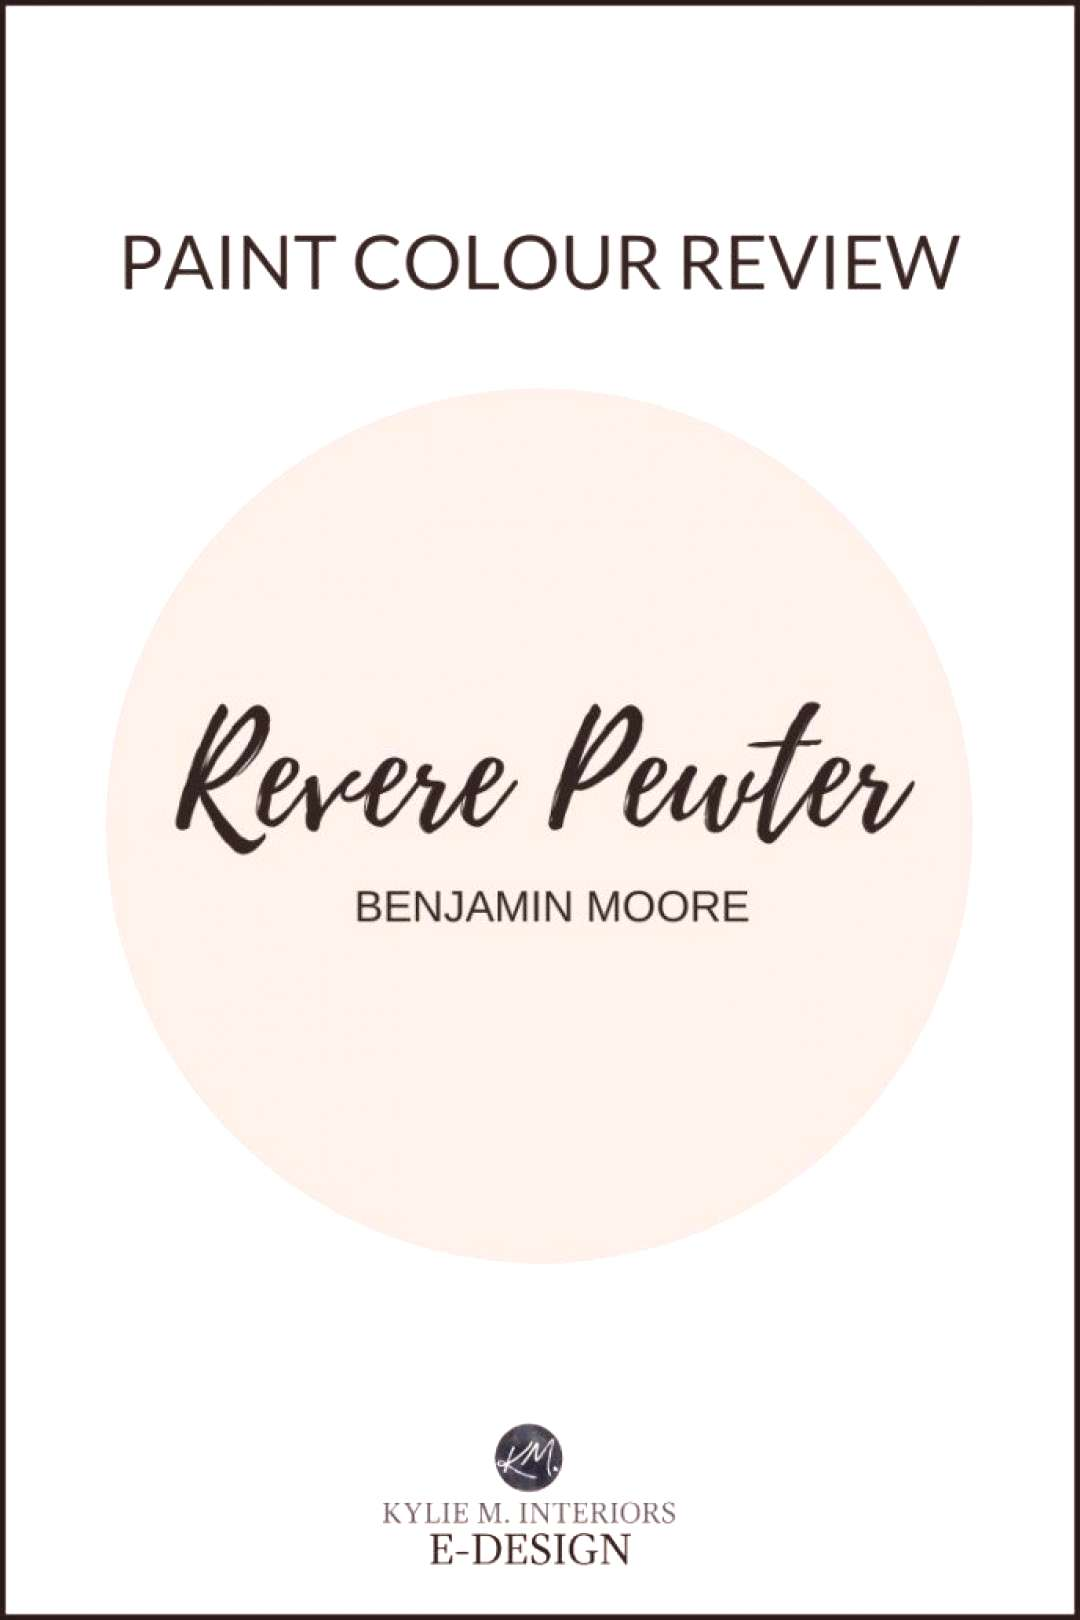 Paint Colour Review: Benjamin Moore Revere Pewter Learn all about the undertones and LRV of Benjami